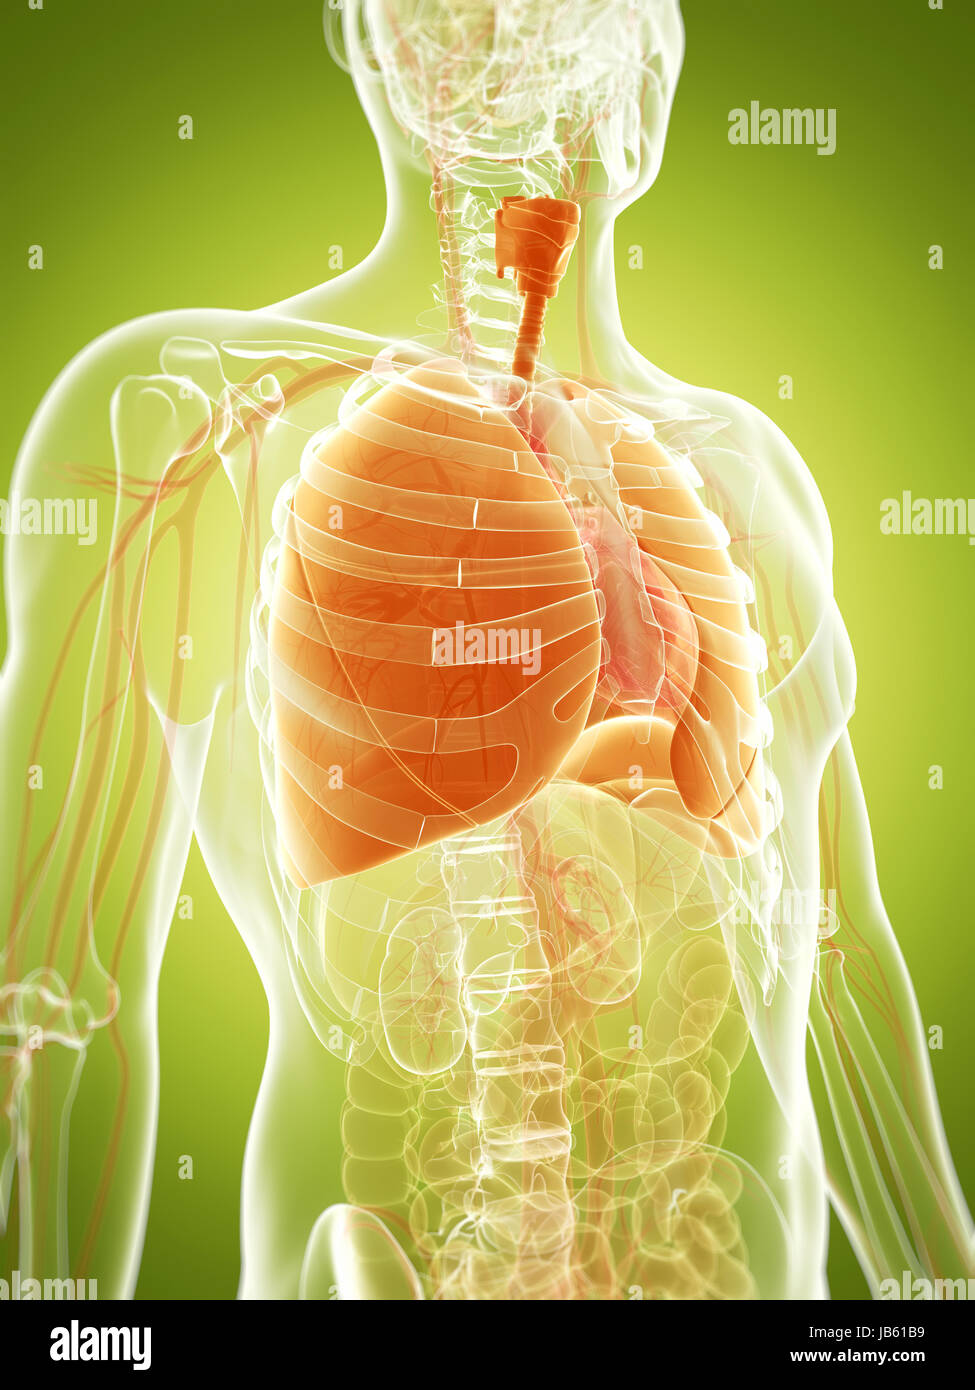 3d rendered illustration of the human lung - Stock Image